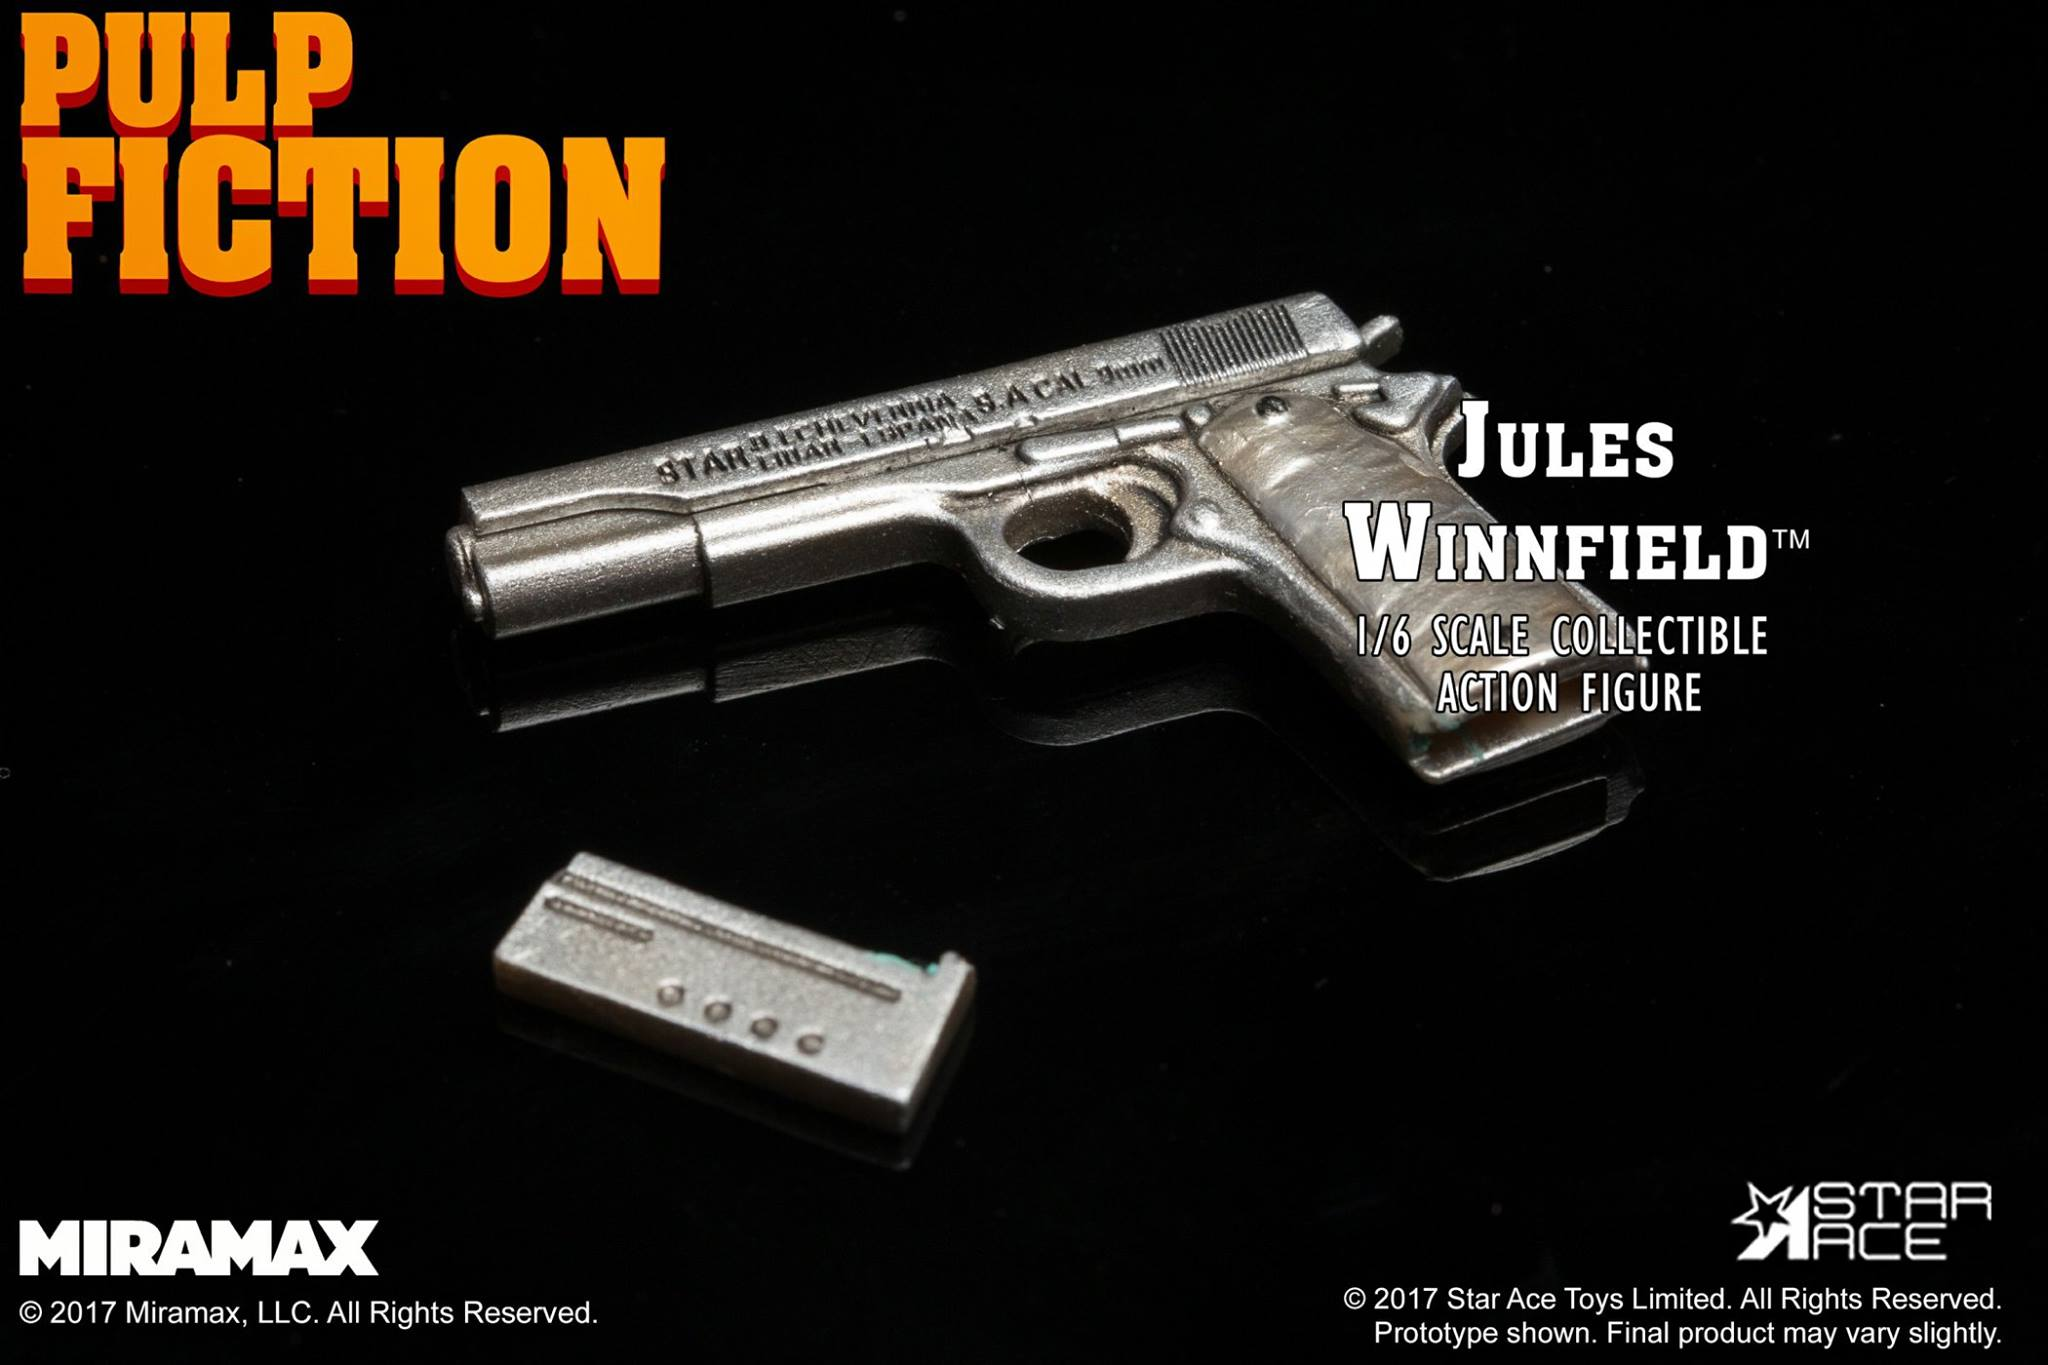 Star Ace Toys - Pulp Fiction - Jules Winnfield